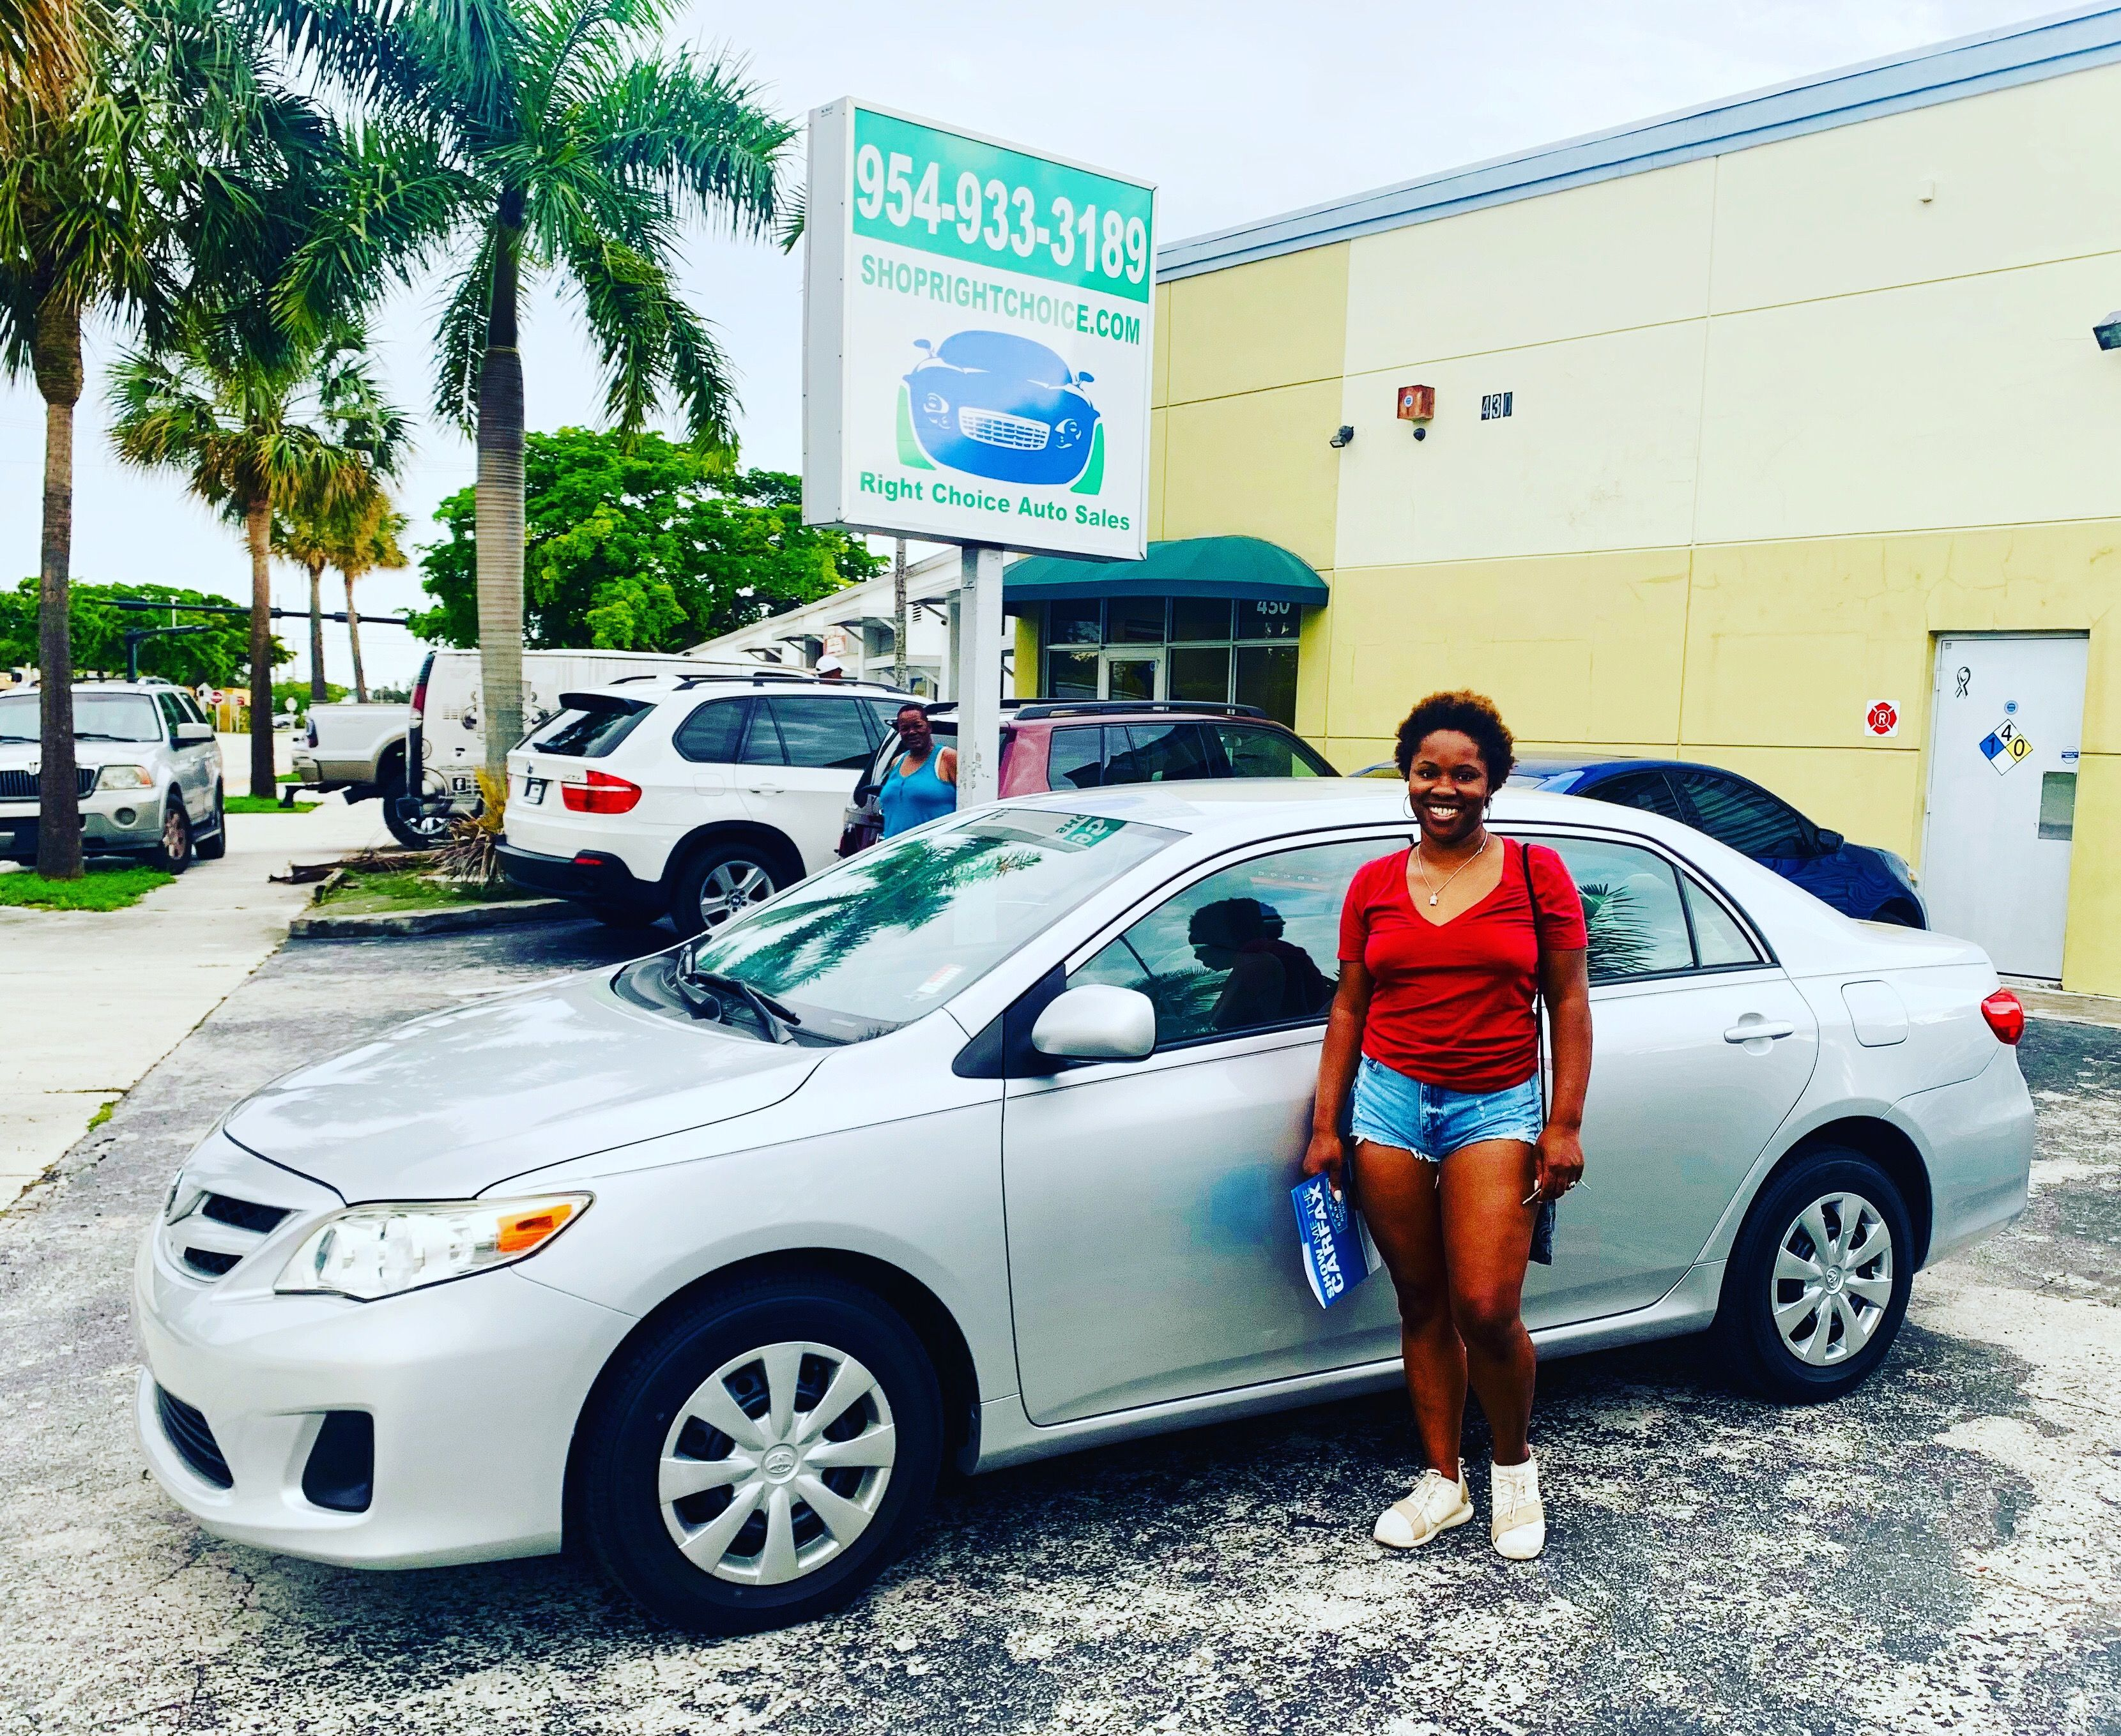 Right Choice Auto >> Another Happy Customer At Right Choice Auto Sales In Pompano